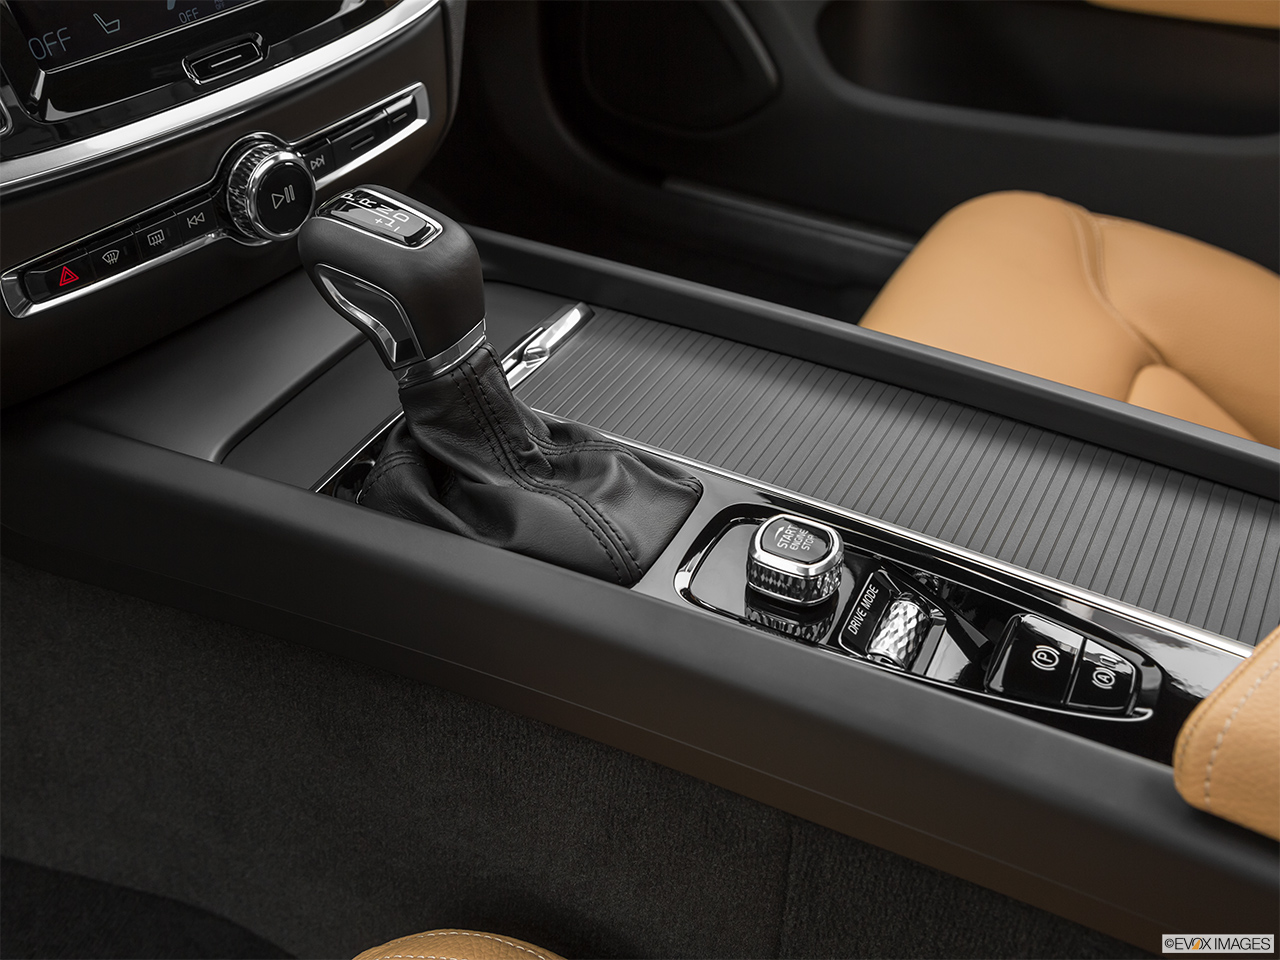 2020 Volvo V60 Cross Country T5 AWD Gear shifter/center console.